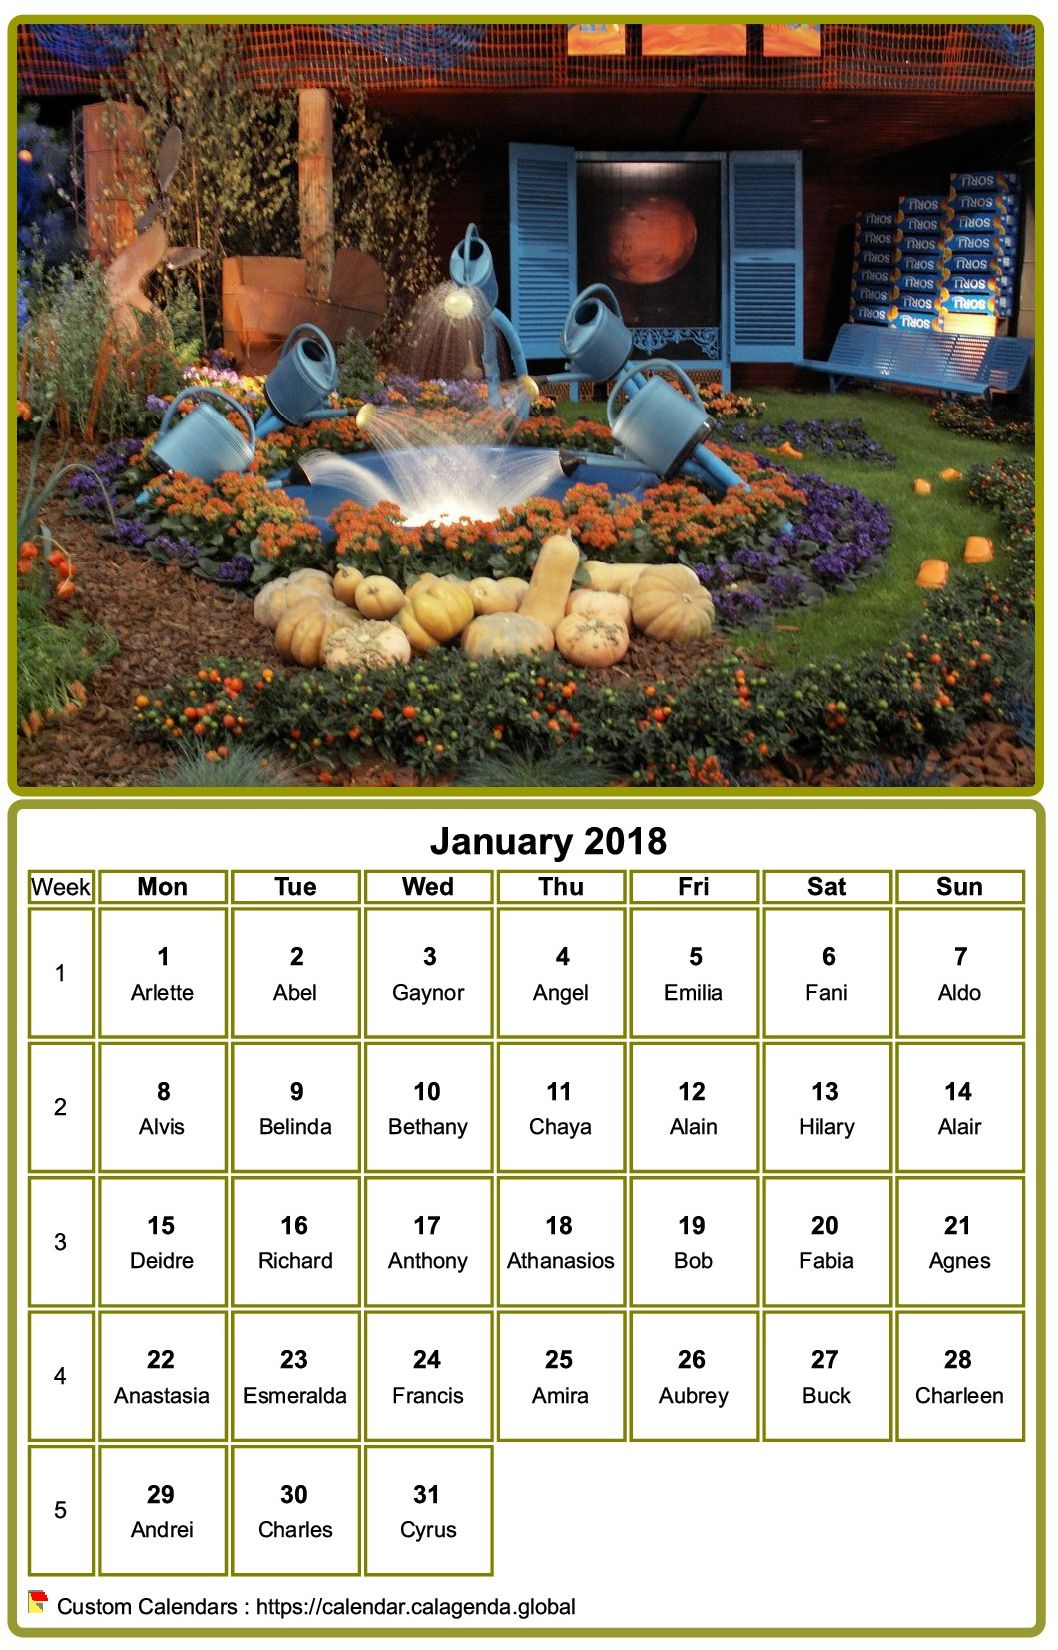 Calendar 2018 to print, monthly, with photo at the top